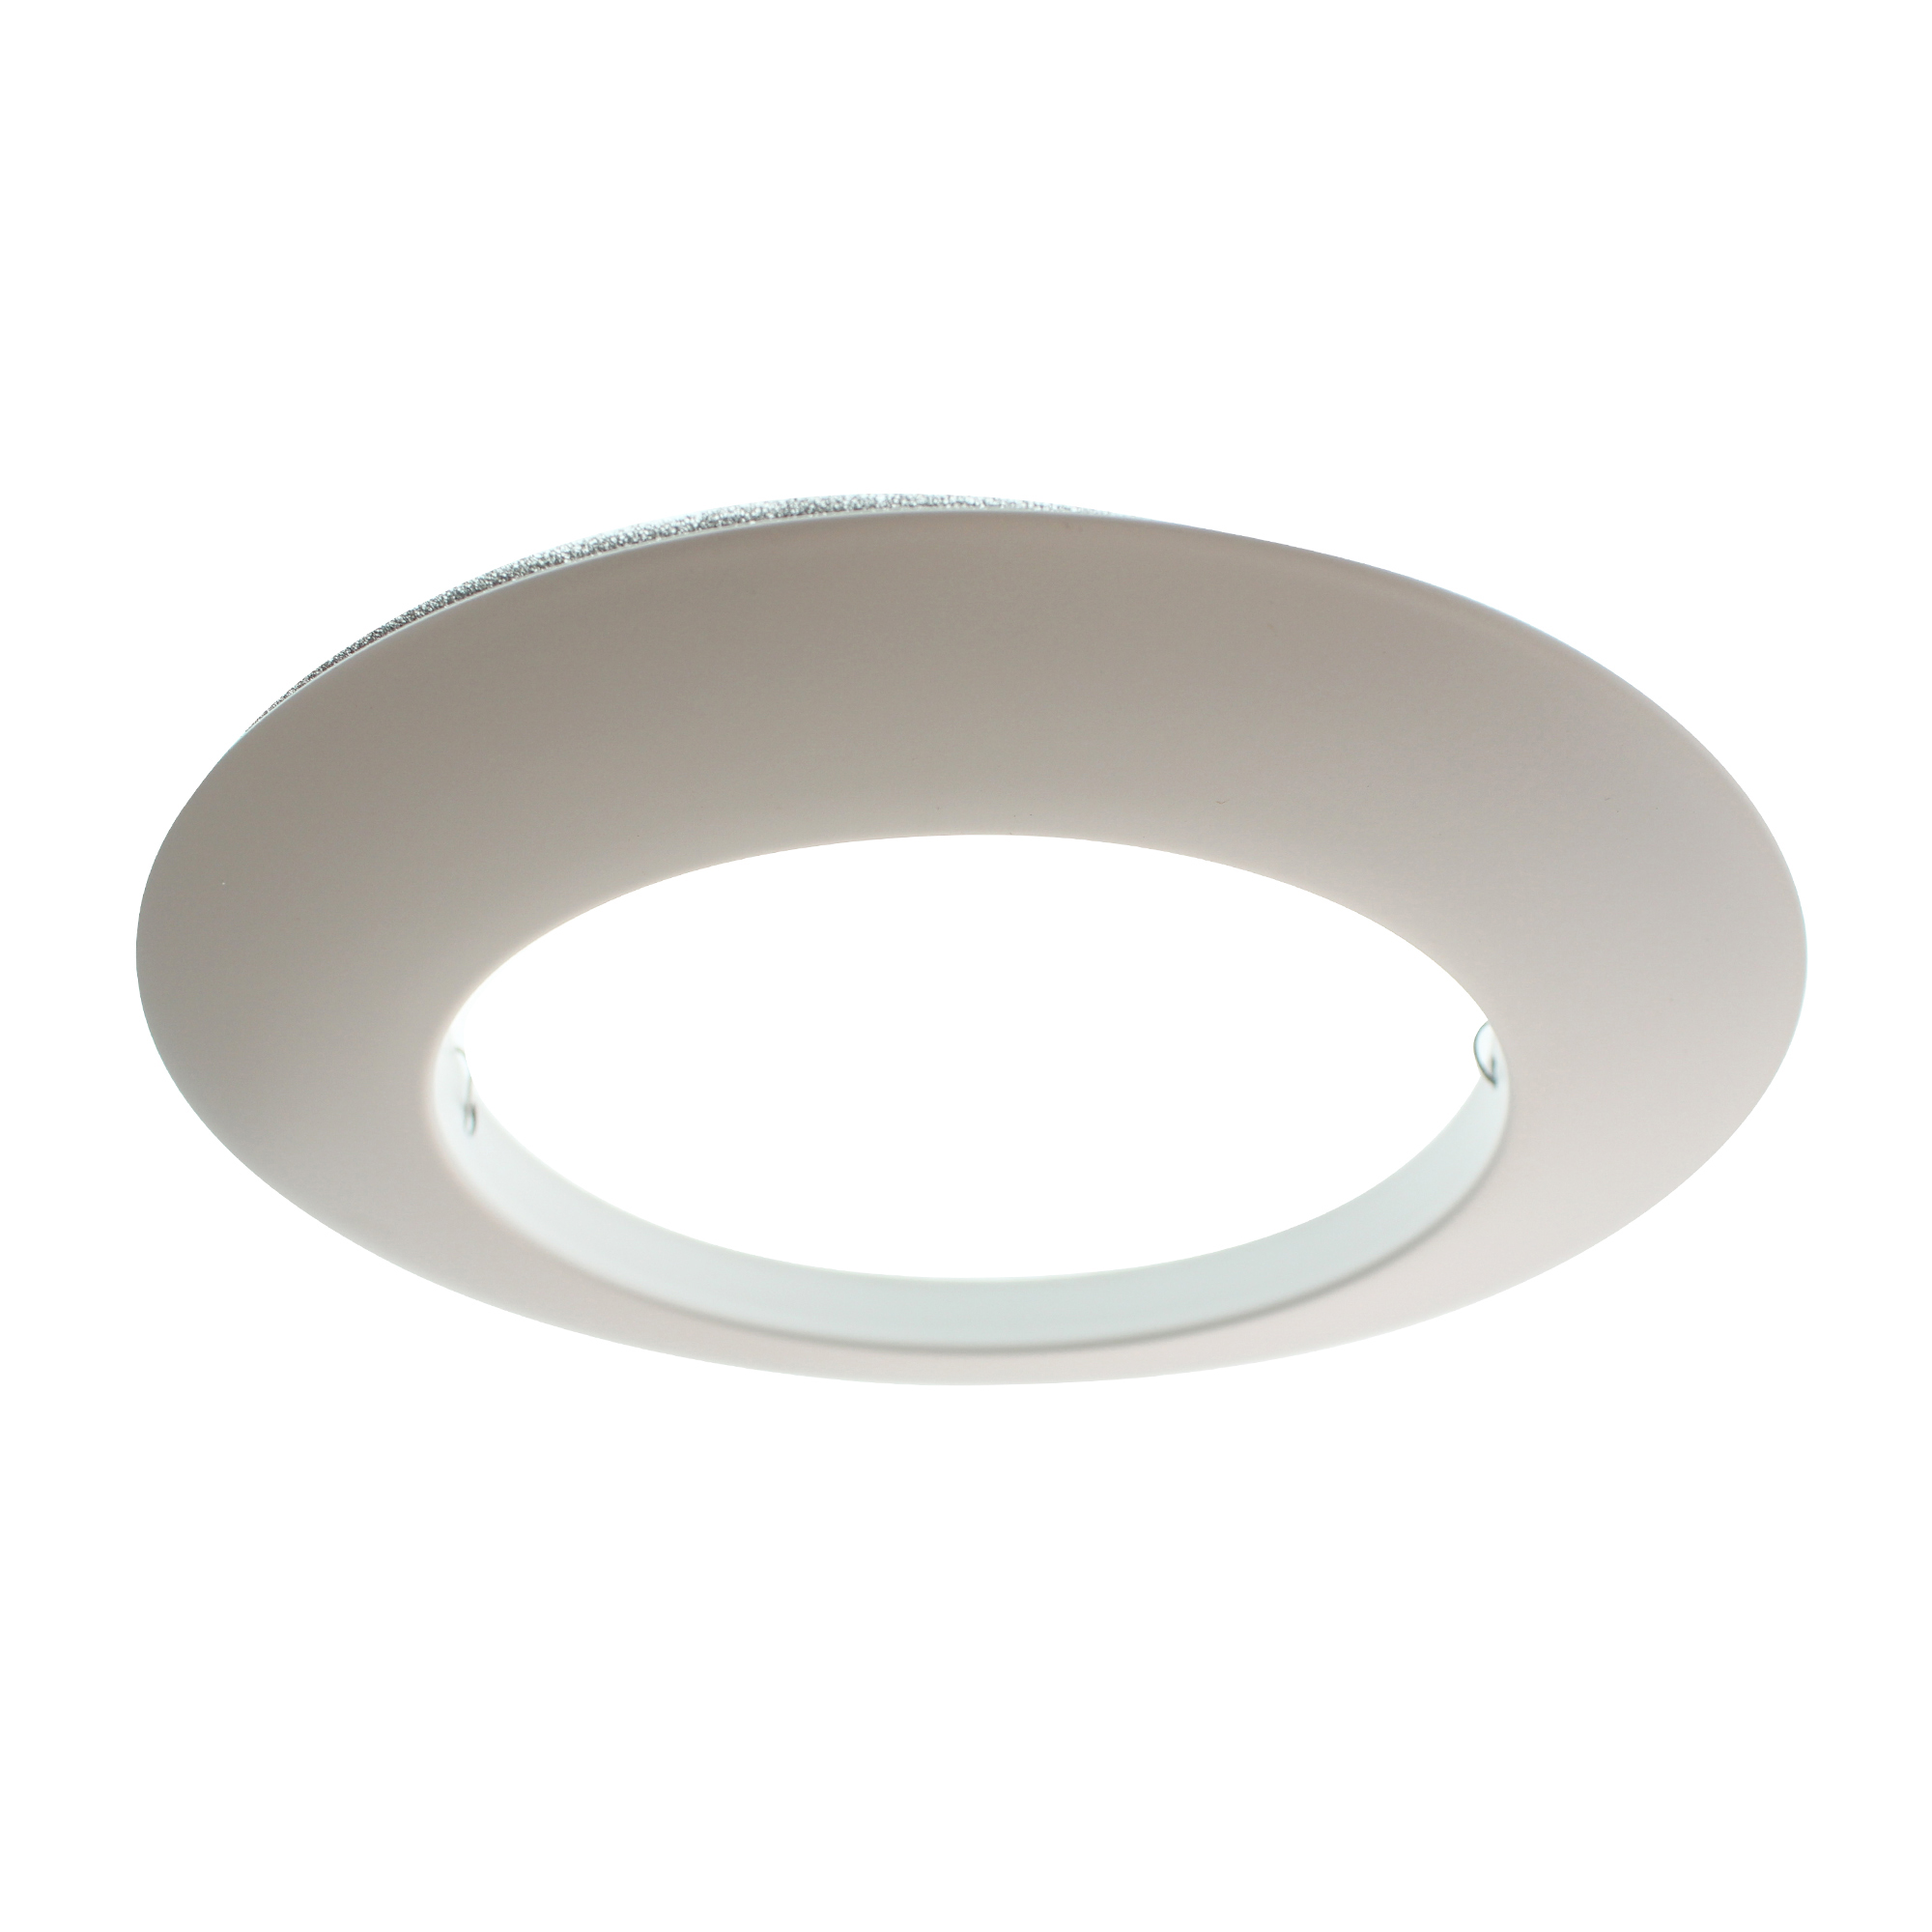 Details About Elco Lighting El40w Recessed Open Trim 6 Inch White